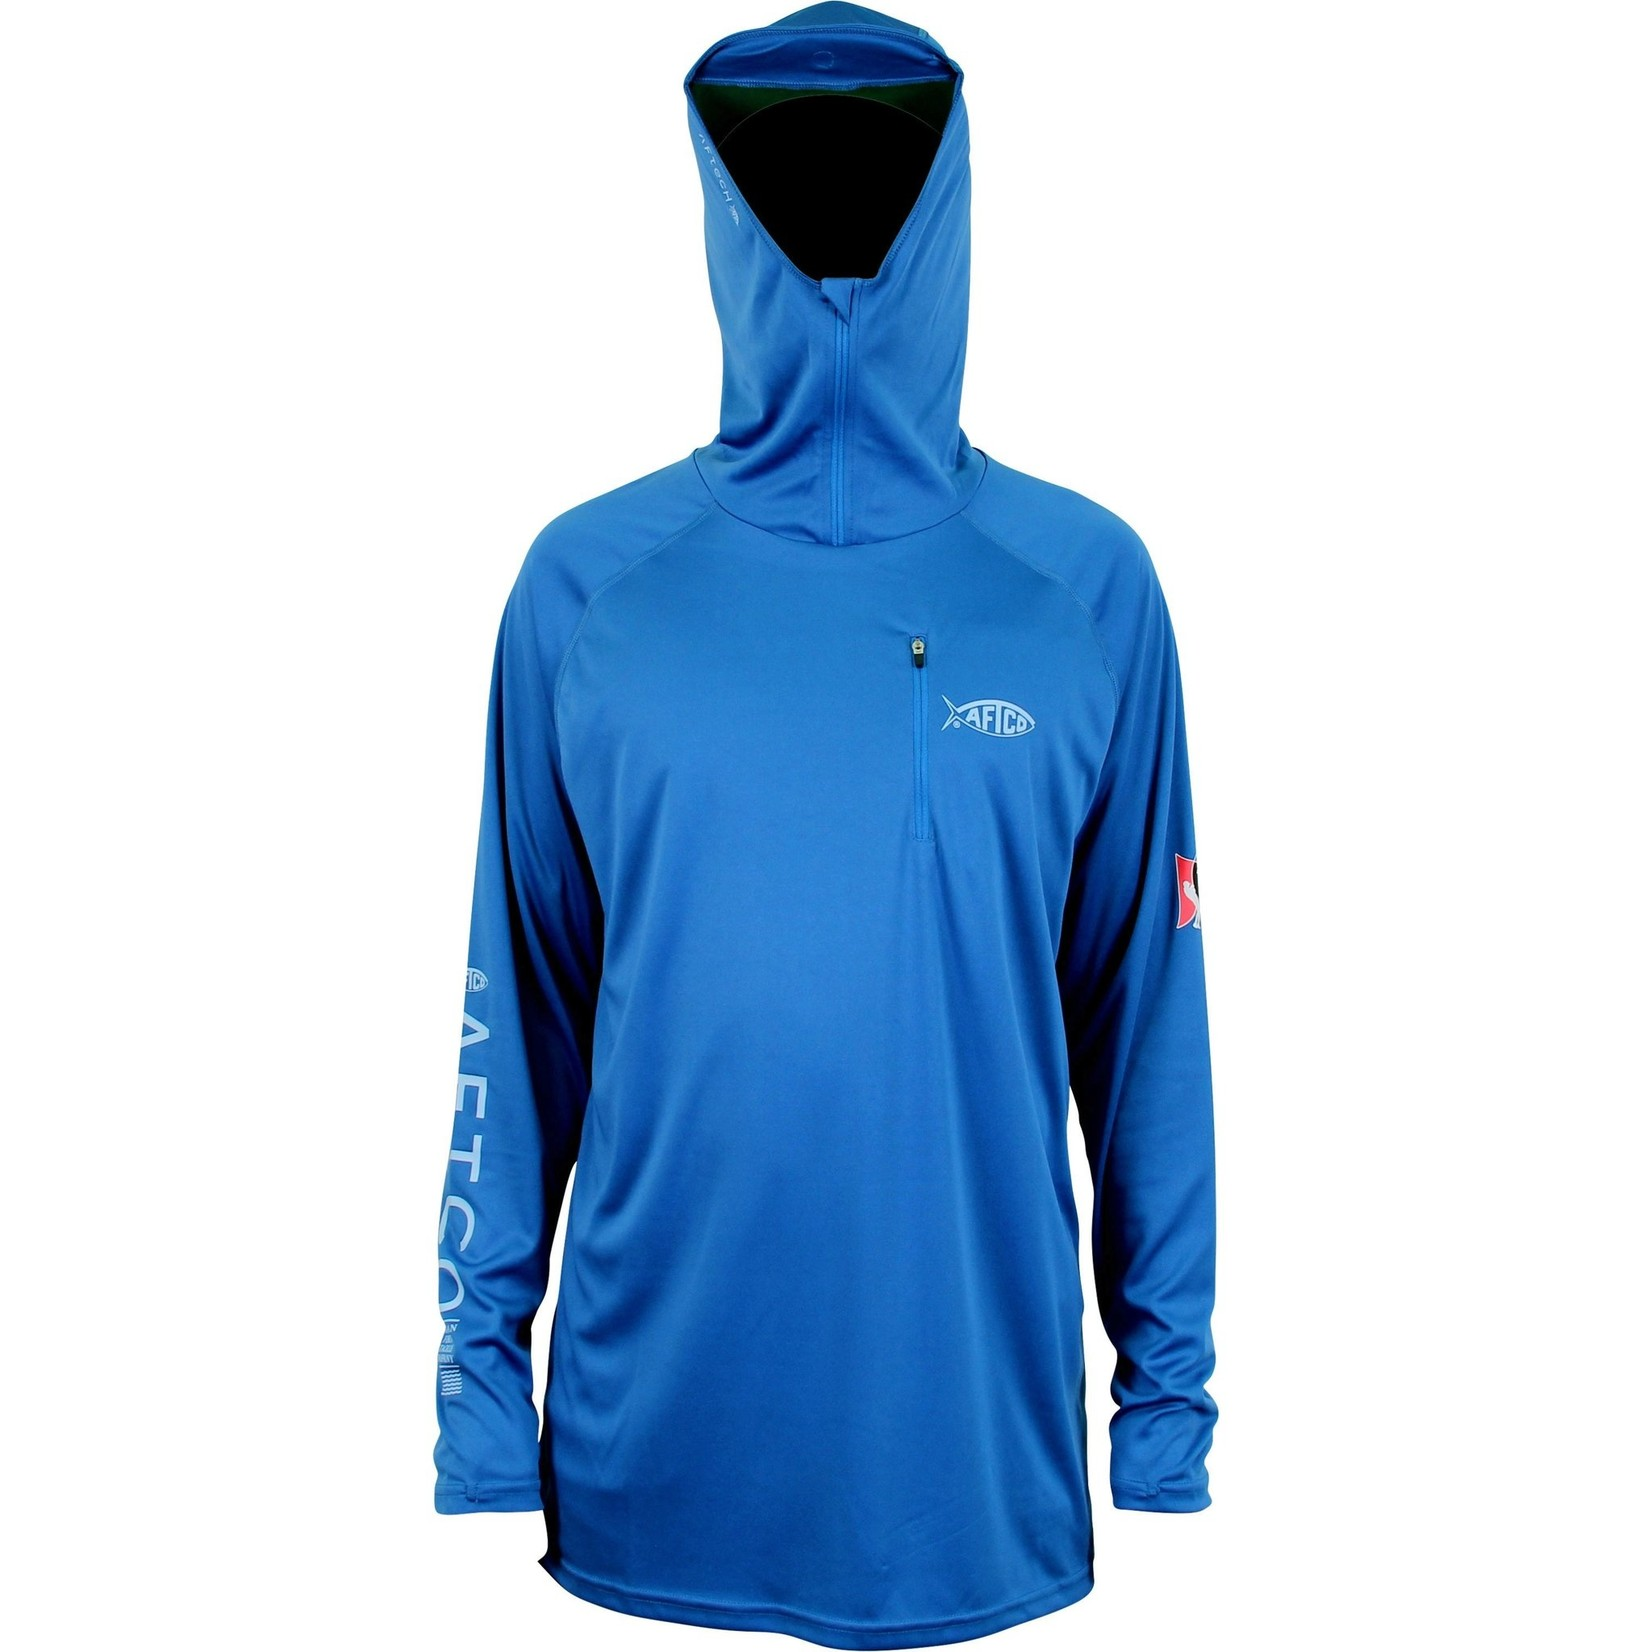 AFTCO Jason Christie Hooded LS Performance Shirt